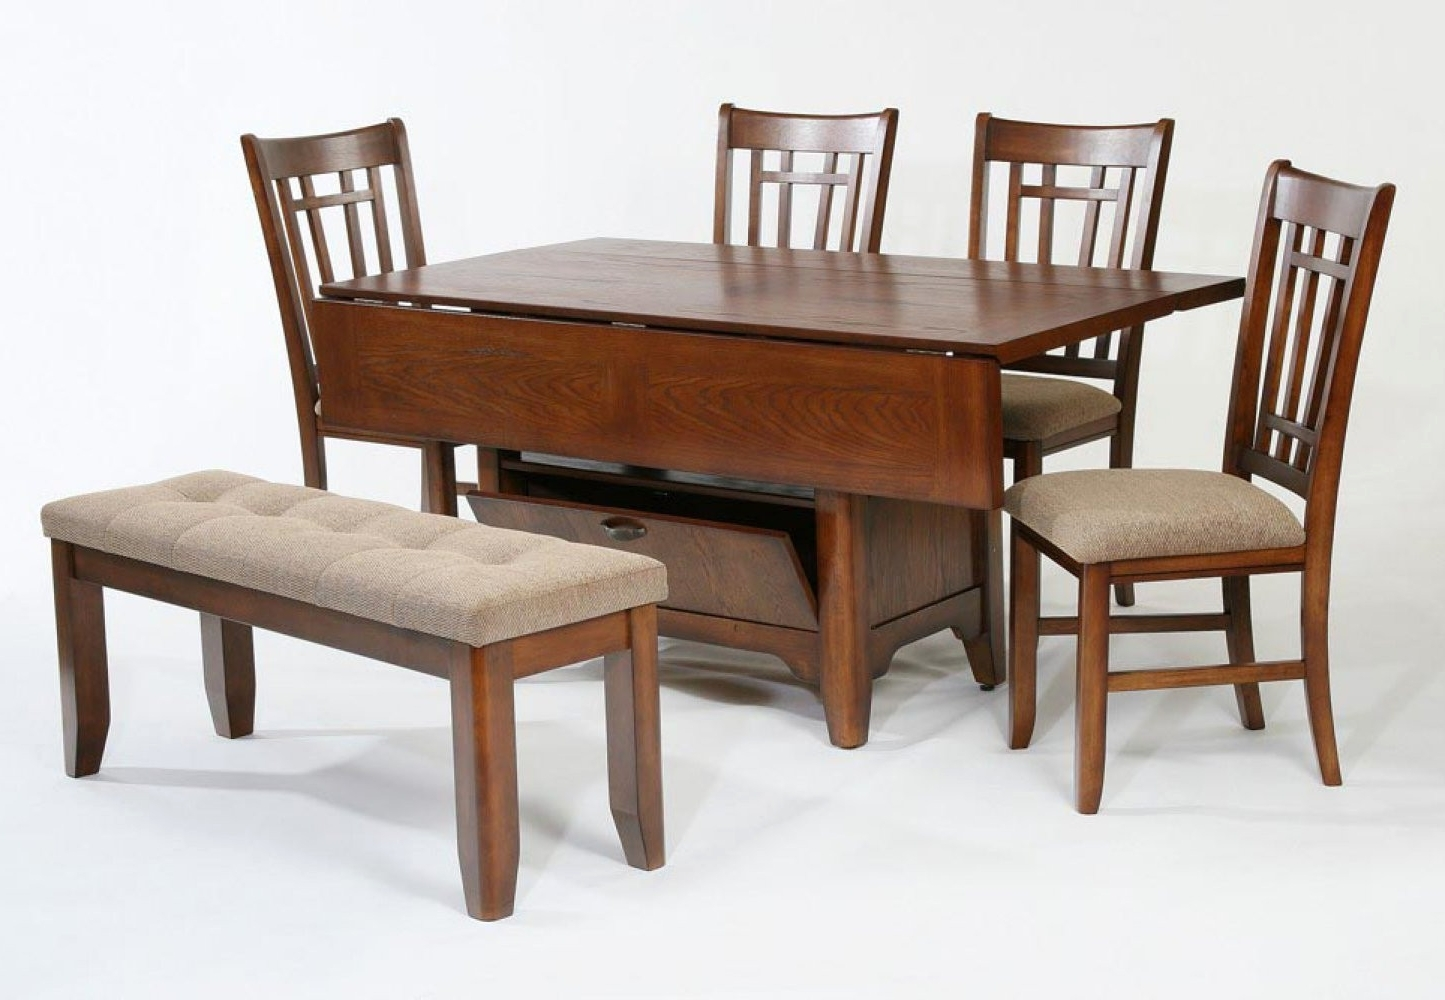 Cool Magnolia Home Dining Room Sawbuck Dining Table Setting Db Table With Well Known Magnolia Home Sawbuck Dining Tables (View 21 of 25)